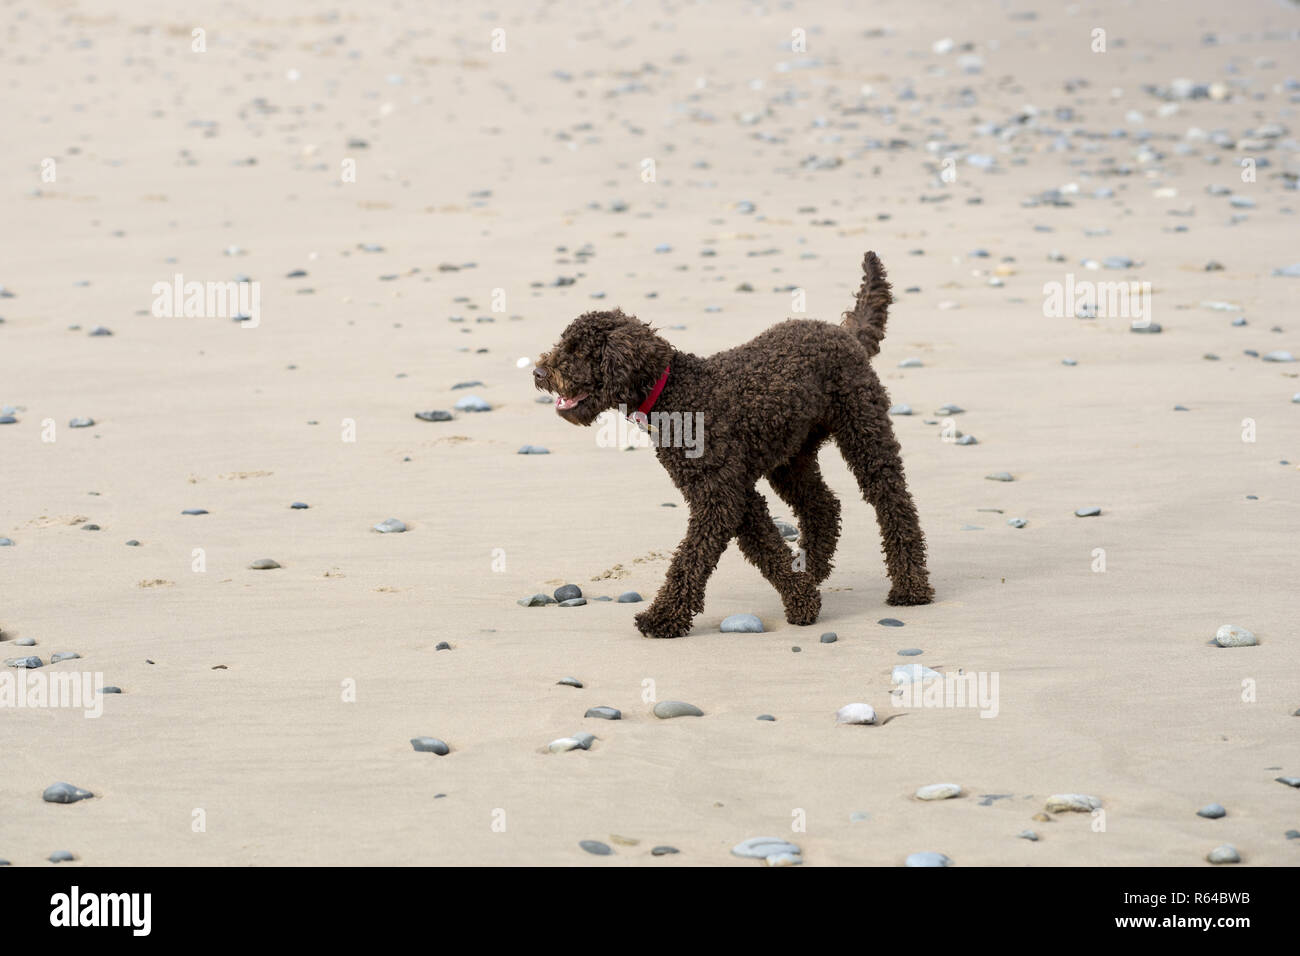 Bailey the chocolate Labradoodle is a fit and healthy dog who enjoys the beach where he can run, he is fast, and socialise with his mates. - Stock Image